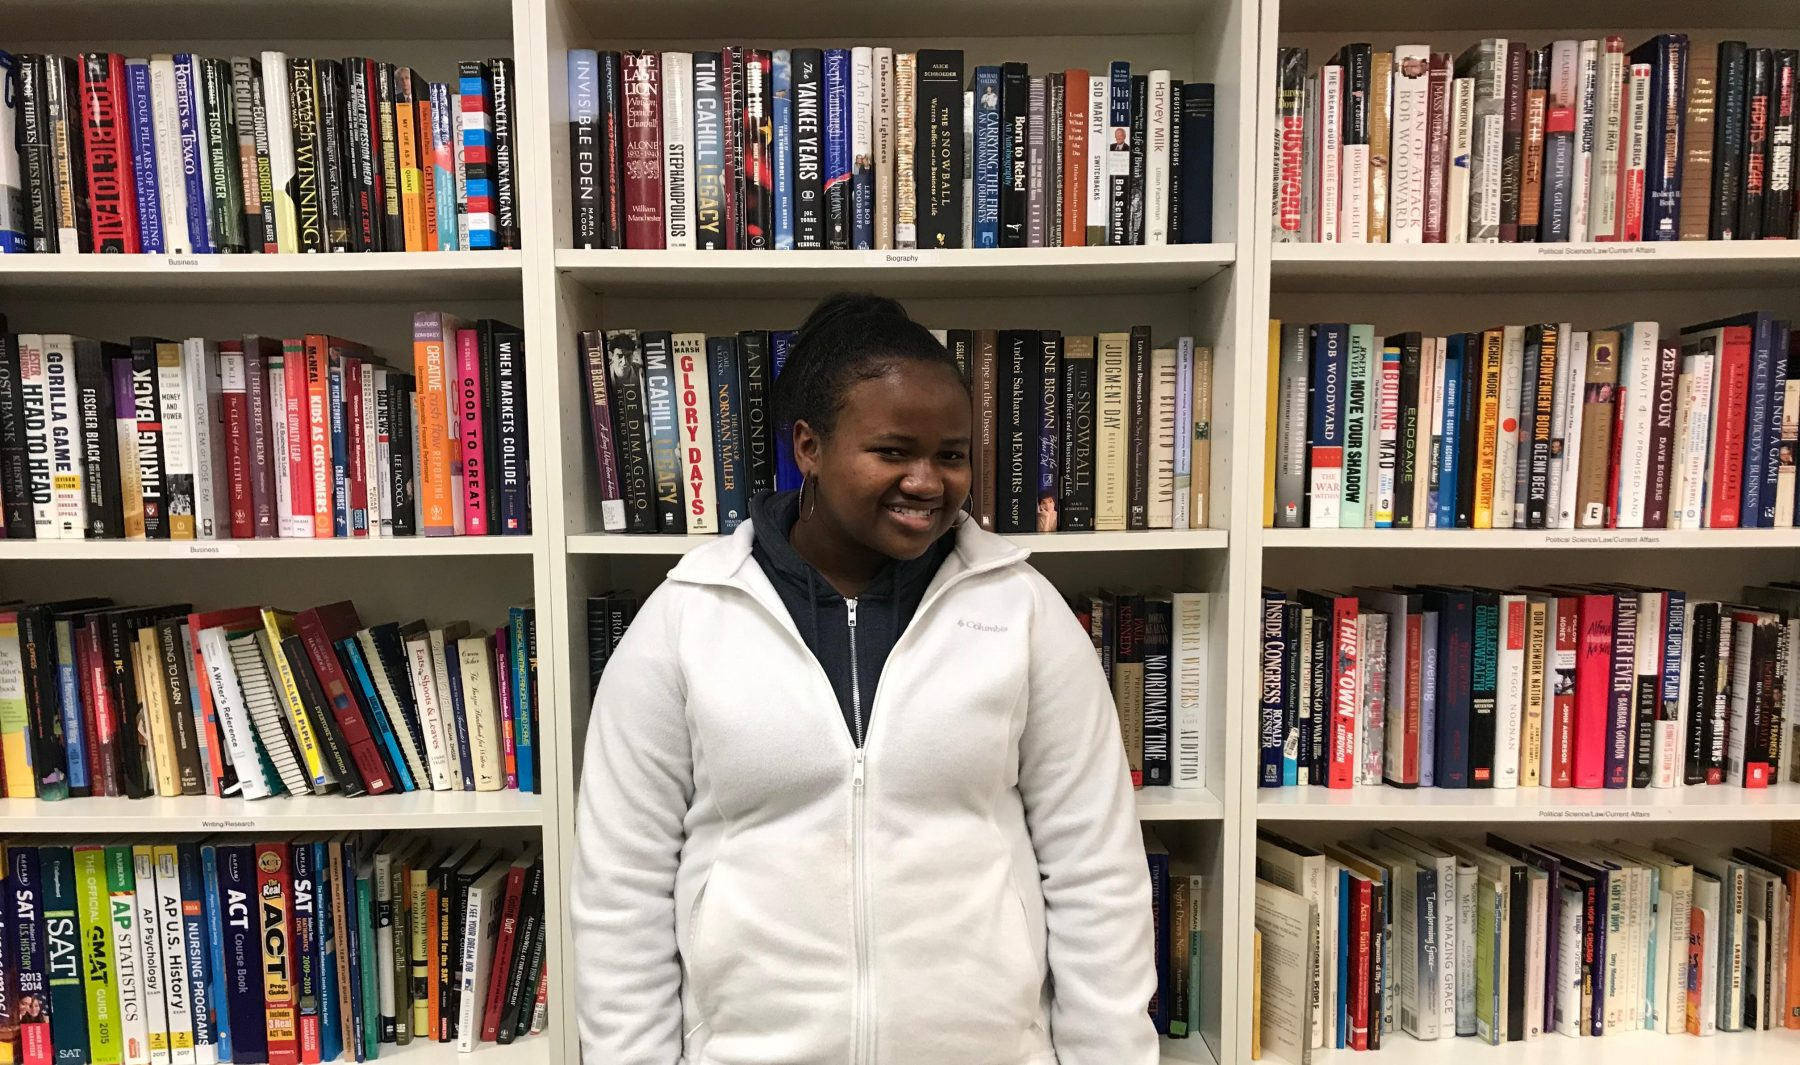 Della Smith, NHR student, stands in front of shelves in the Book Bank.